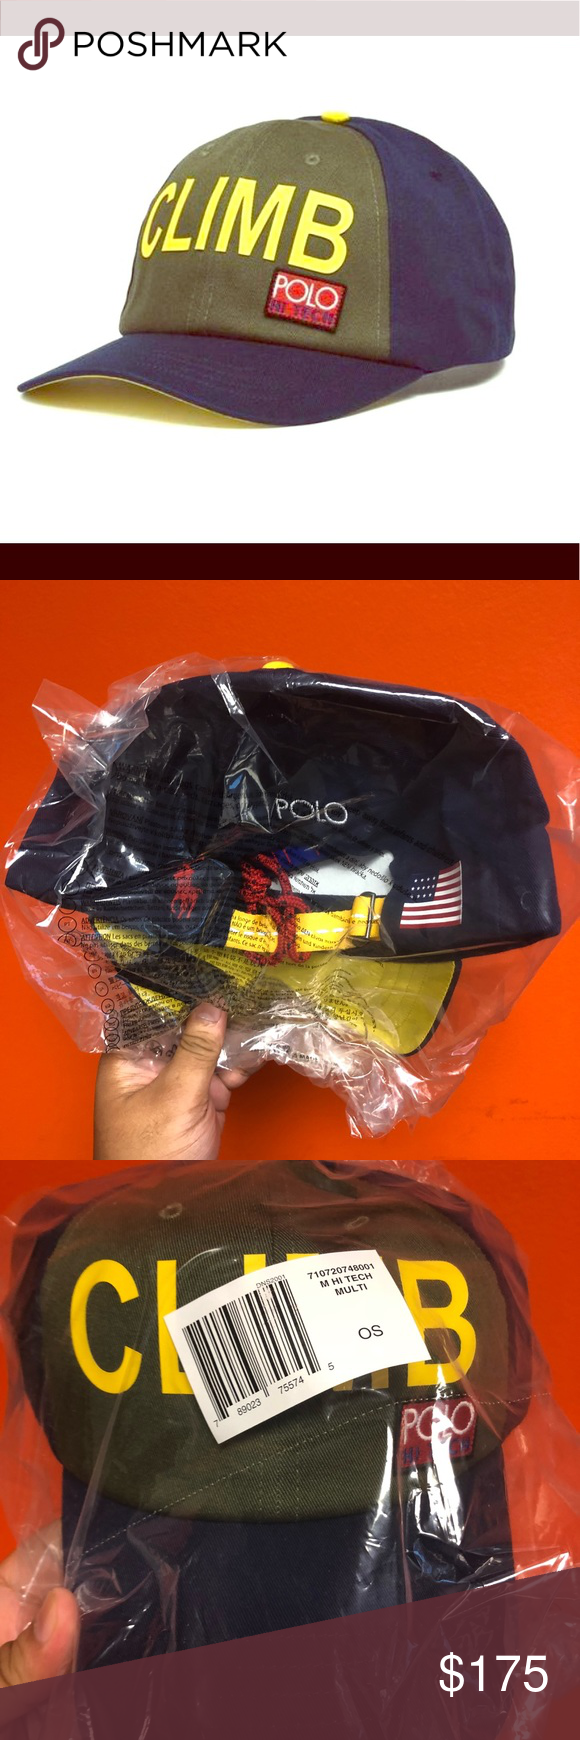 Polo Ralph Lauren Hi Tech Climb hat Up for sale is a Ralph Lauren Polo  Climb cap Brand New with tags. One size fits all with an adjustable strap. 1b2b915376b